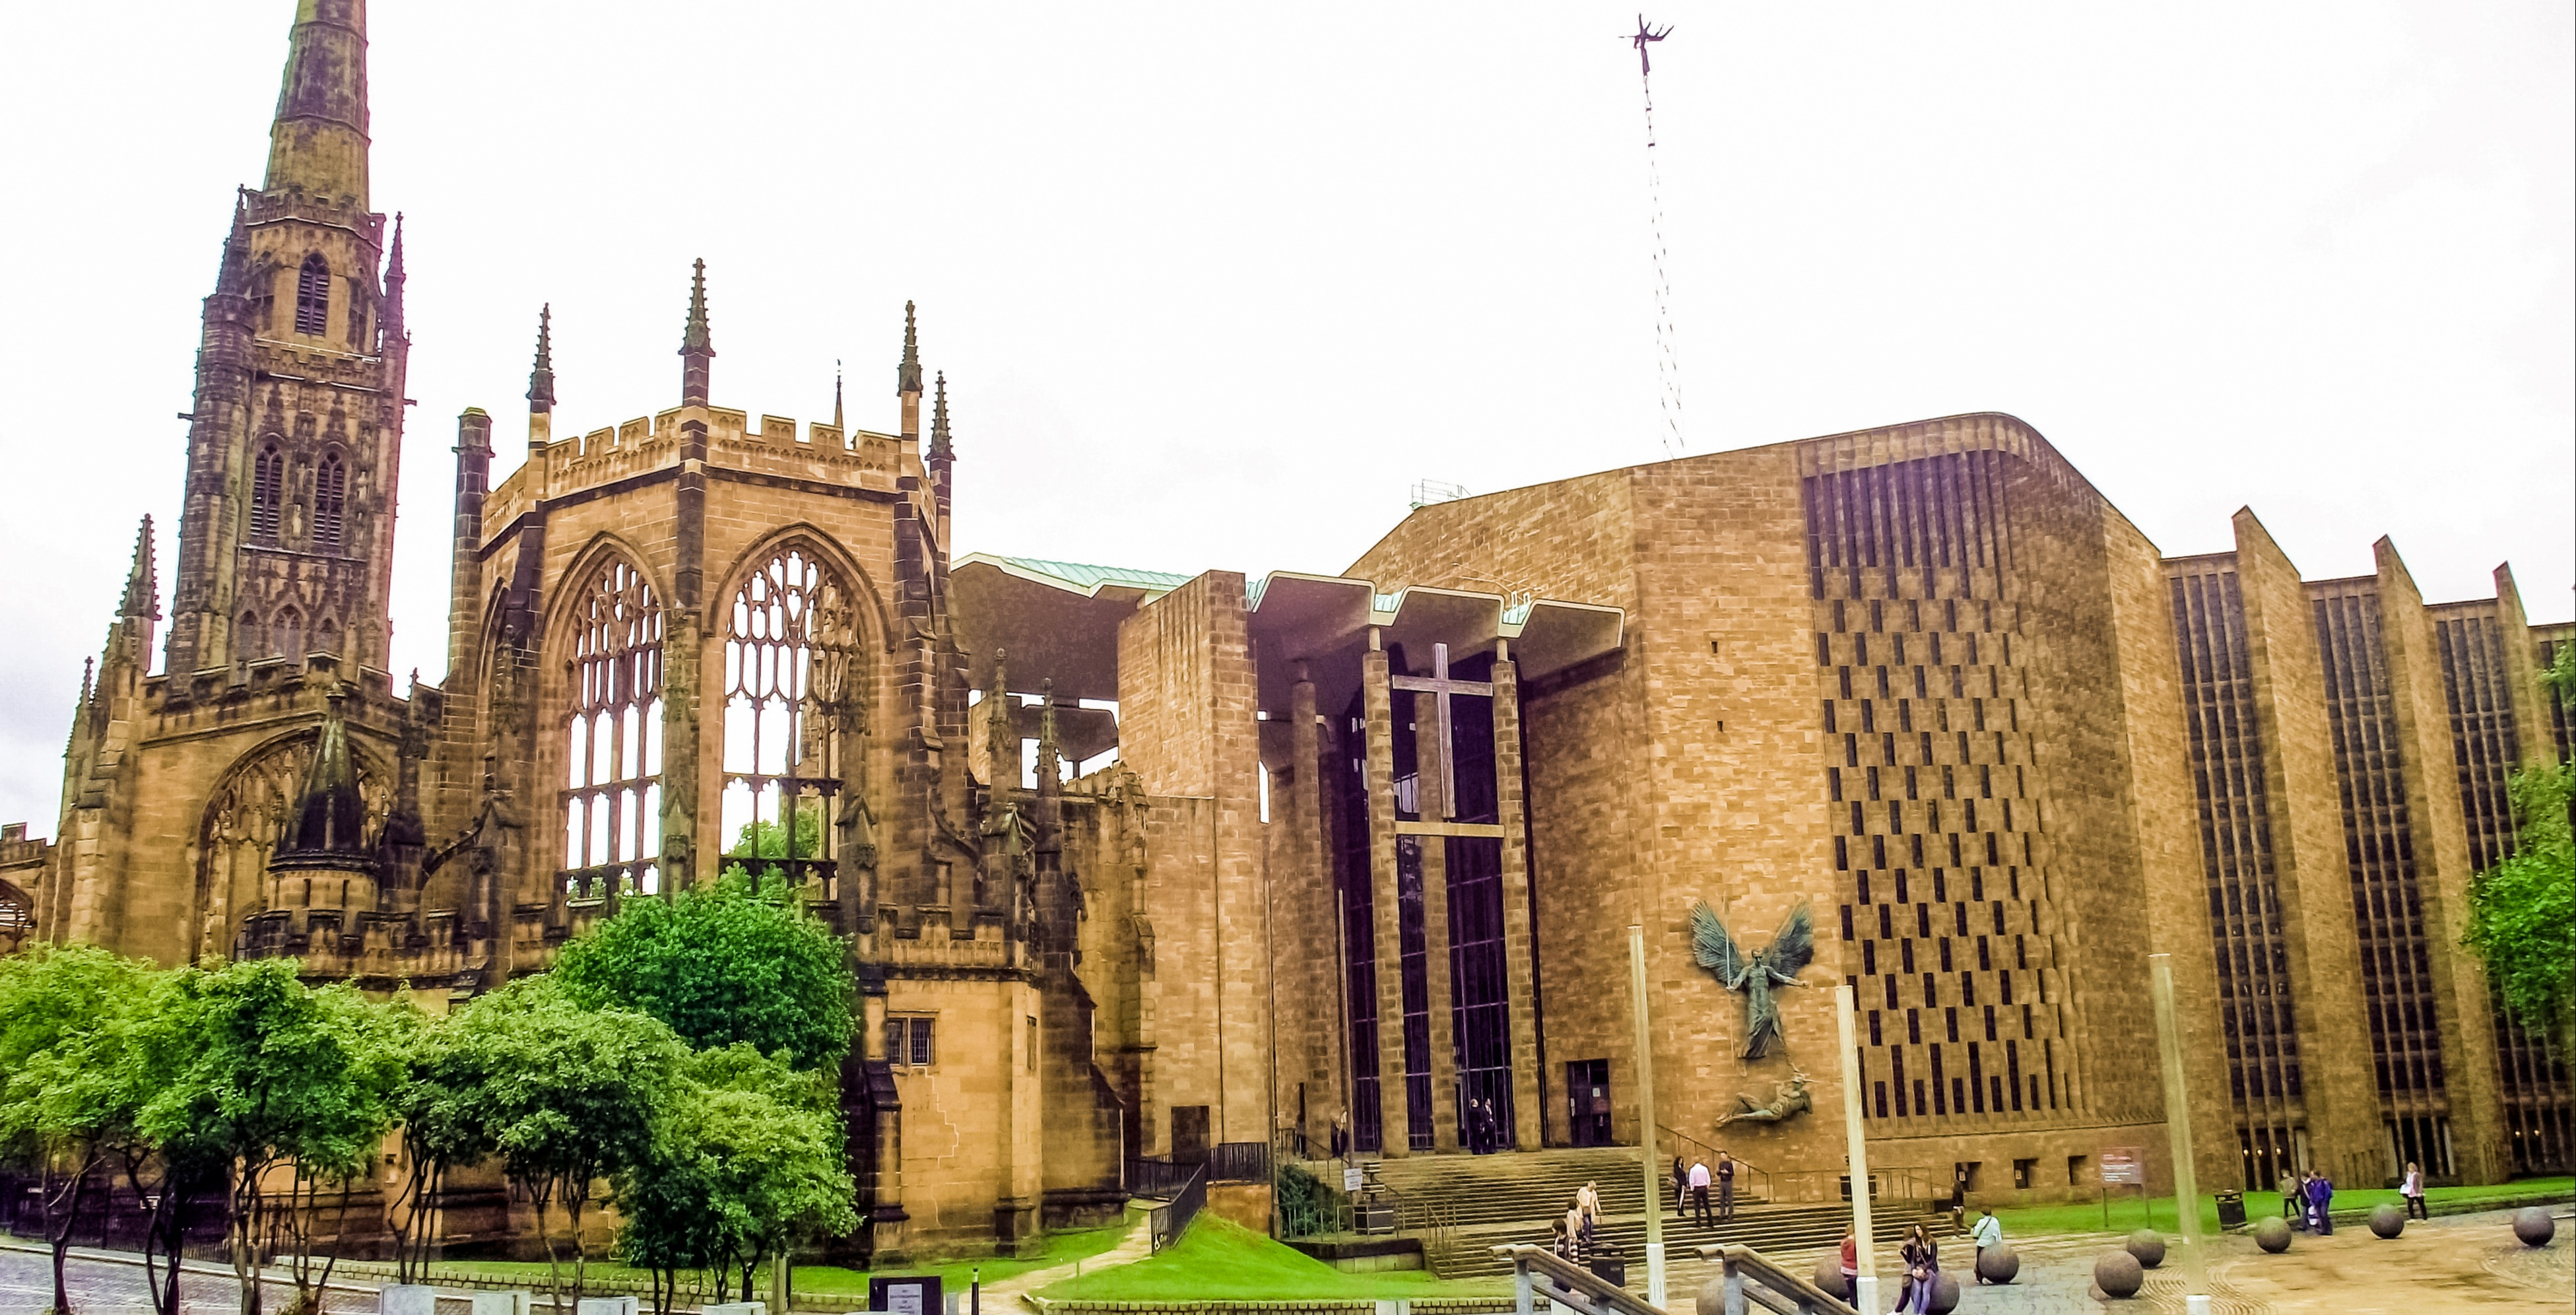 Jmw-CoventryCathedrals-2013-0001-2